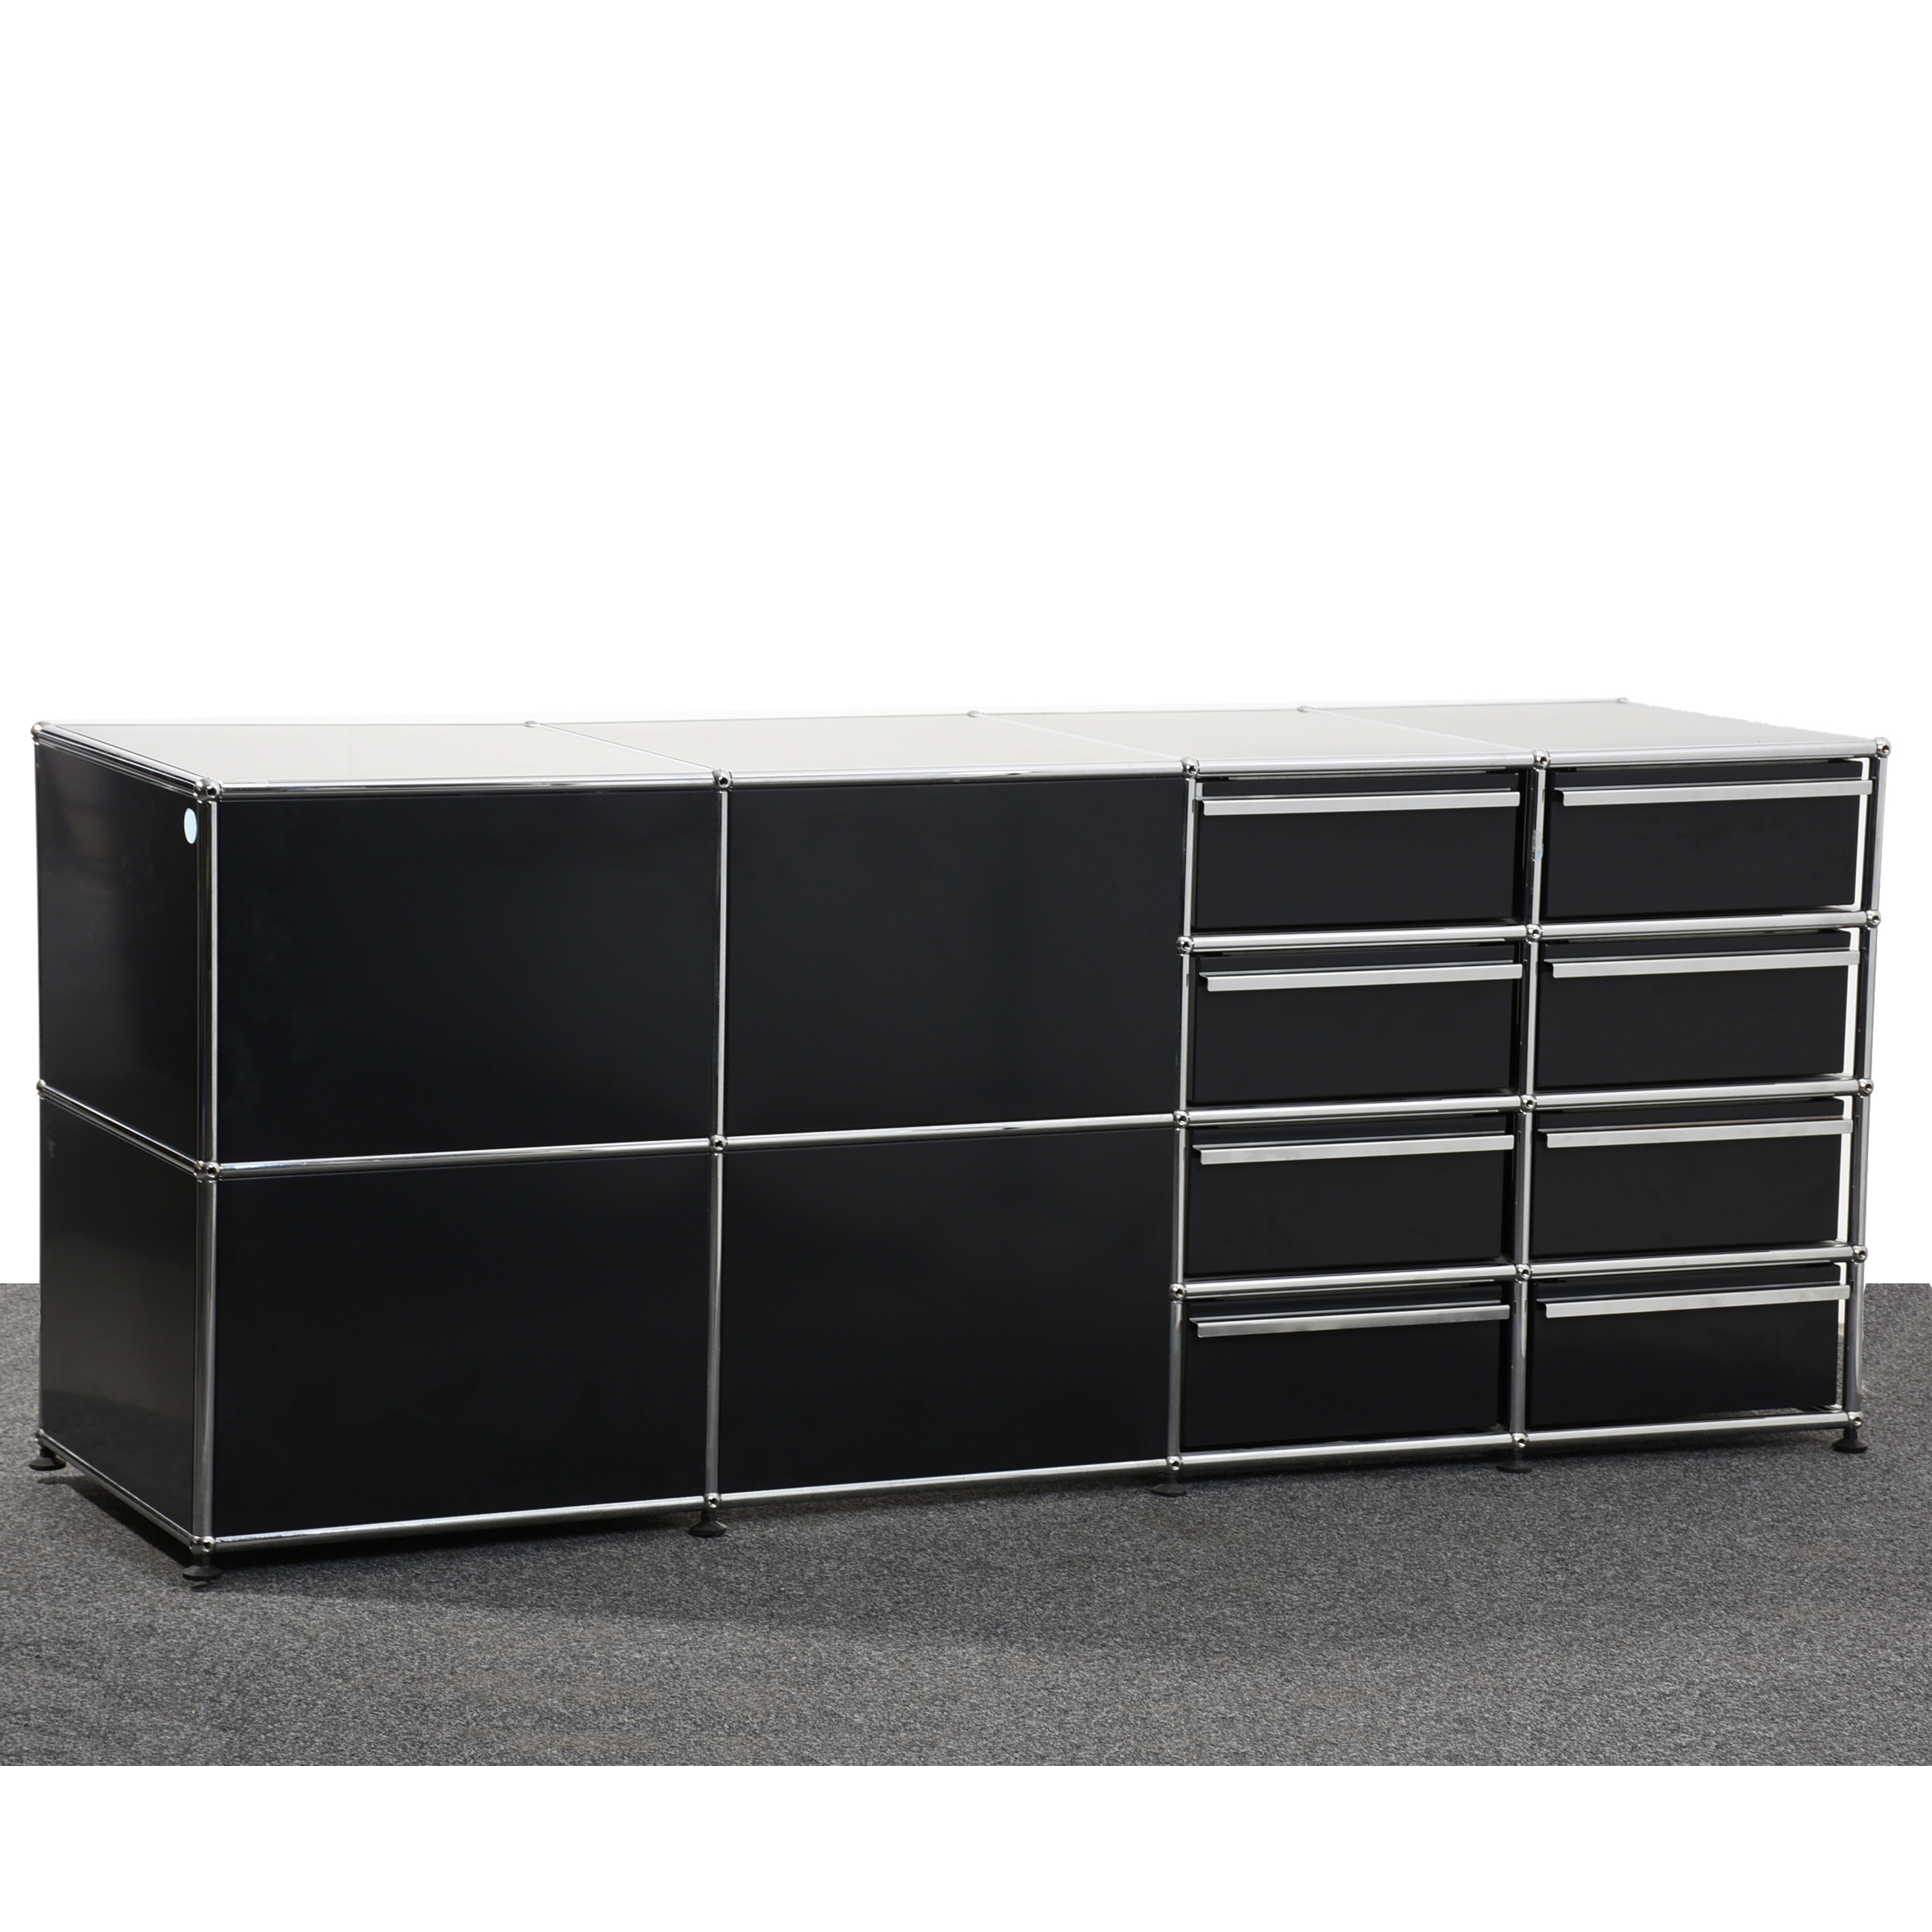 Inspiration about Usm Haller, Sideboard Mit Schubladen & Offene Fächer, Schwarz/chrom, 36377 Regarding Most Recent Cher Sideboards (#12 of 20)